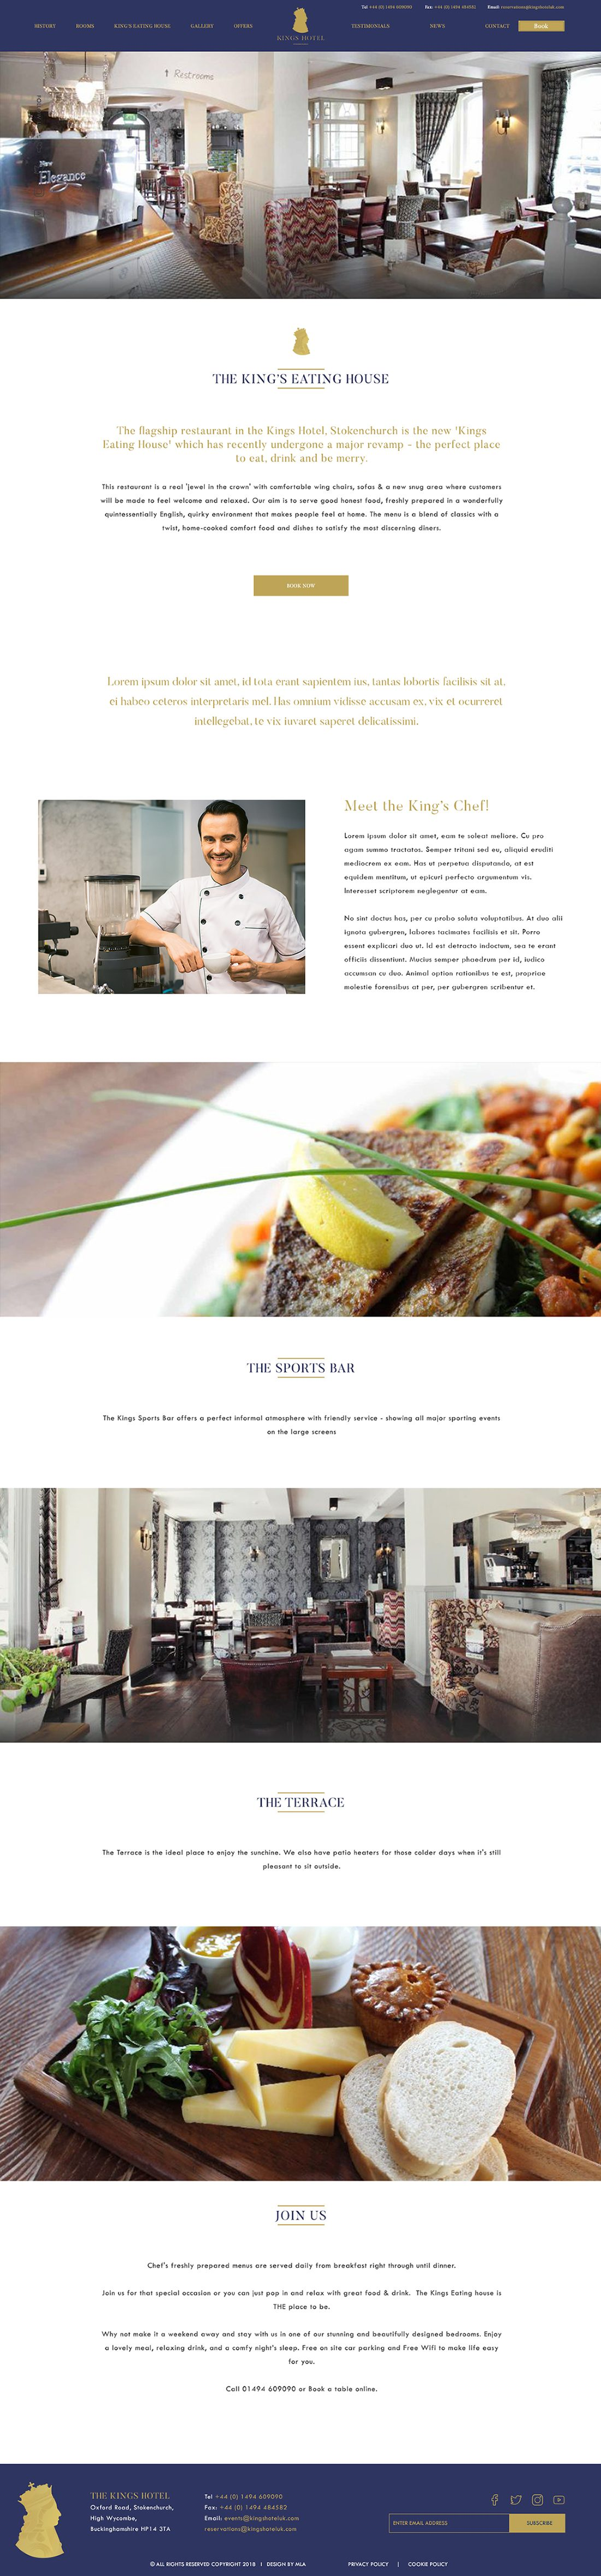 The Kings Hotel restaurant page - Web design London - web design agency london